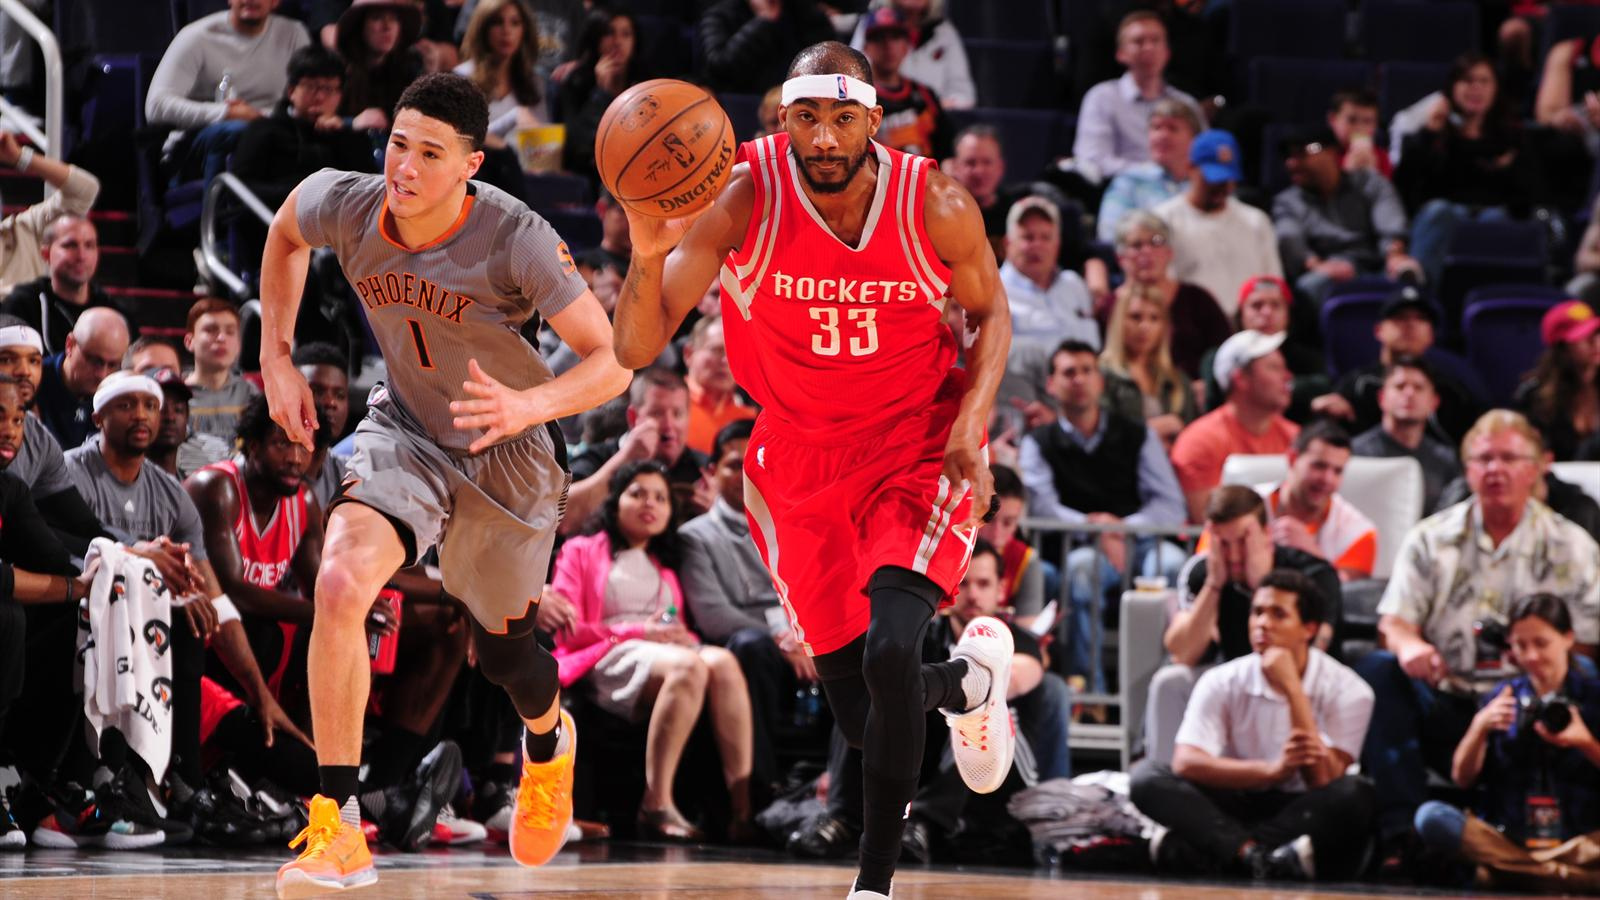 Corey Brewer #33 of the Houston Rockets brings the ball up court against the Phoenix Suns